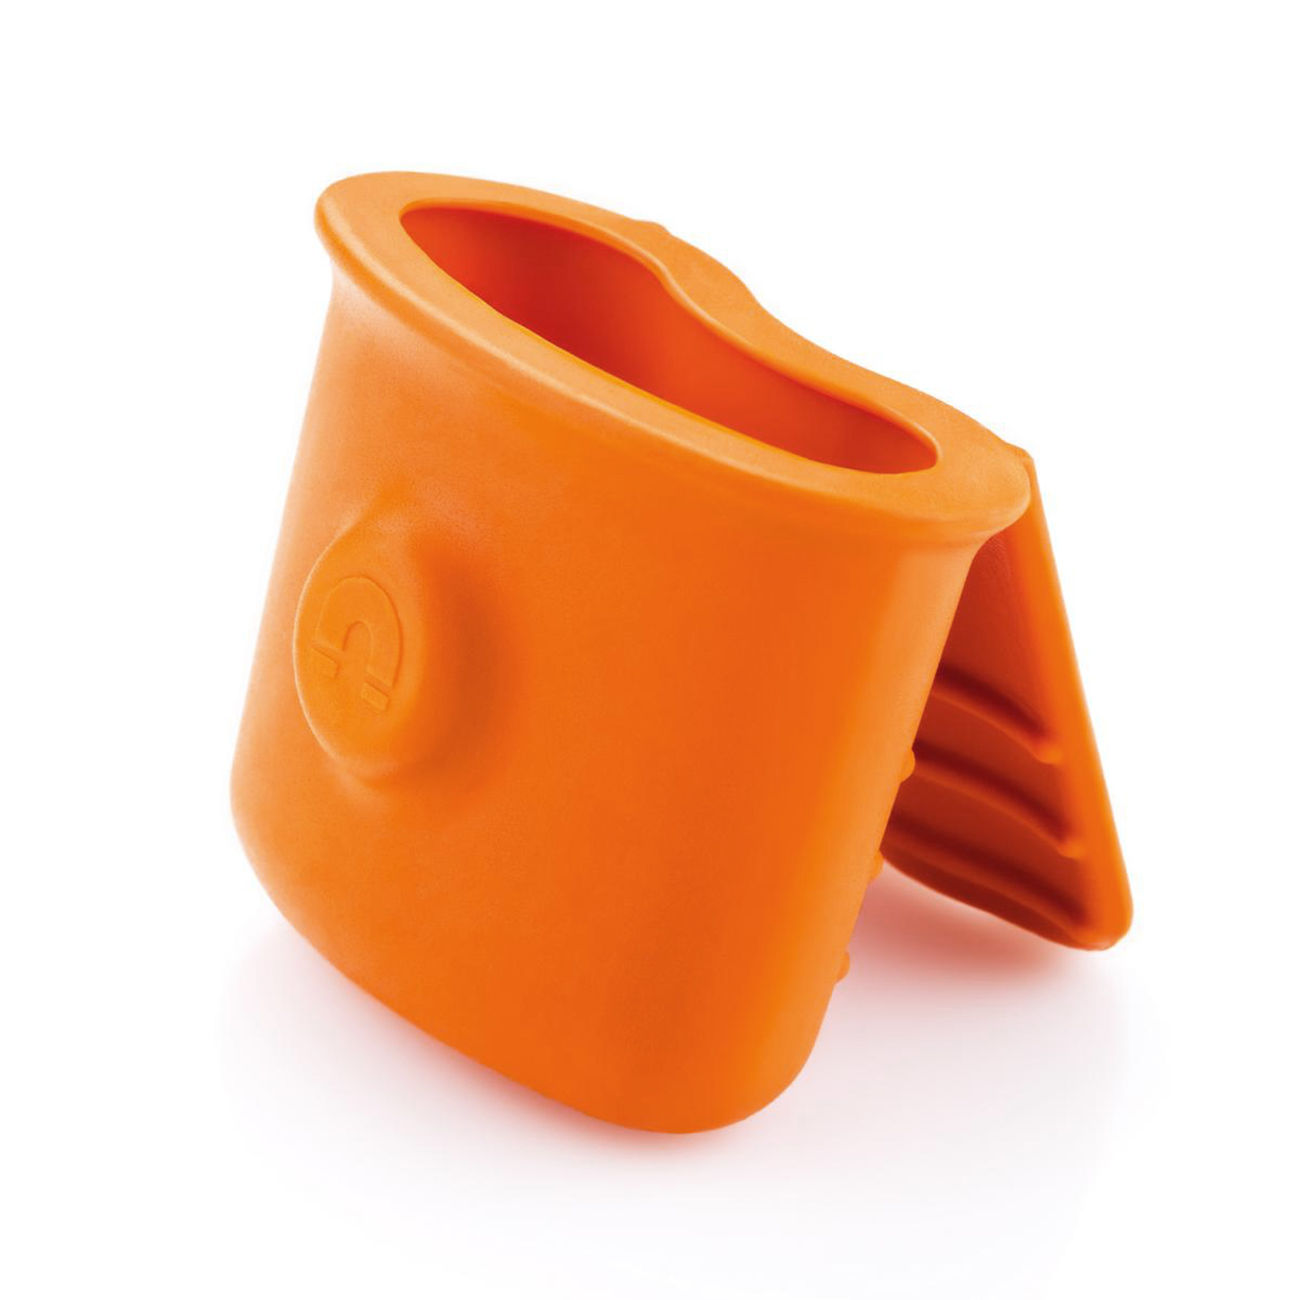 GSI Outdoors Griffzange Microgripper orange 1